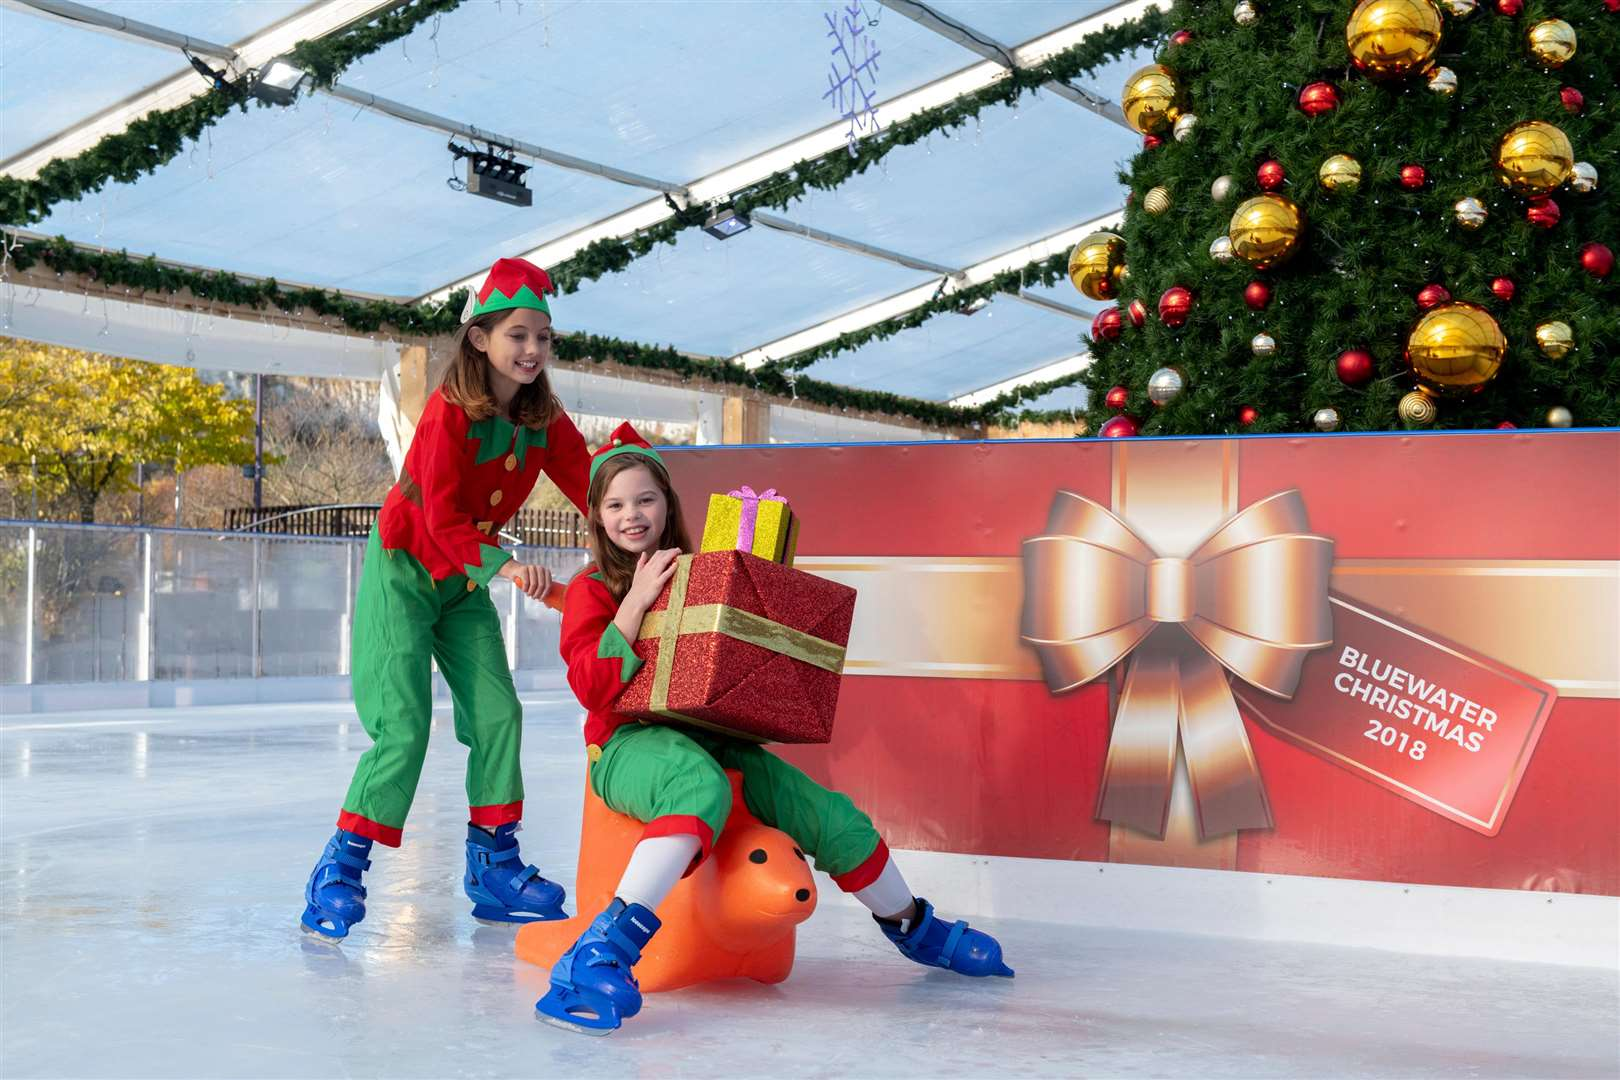 Enjoy the ice rink at Bluewater after parking for free